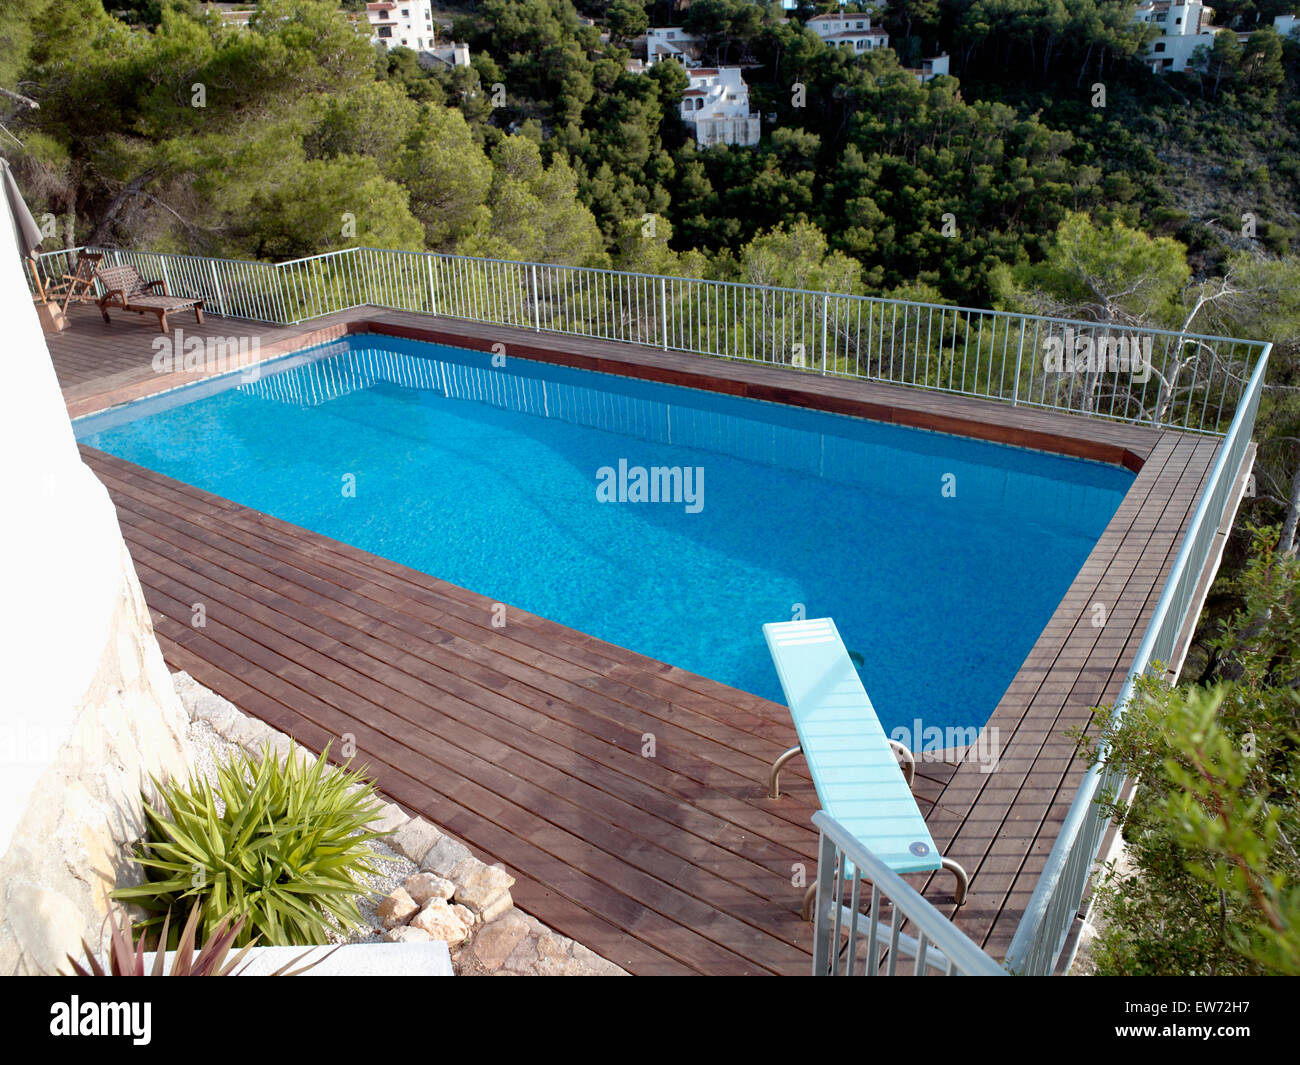 Mansion With Indoor Pool Diving Board Birdseye View Of Turquoise Swimming